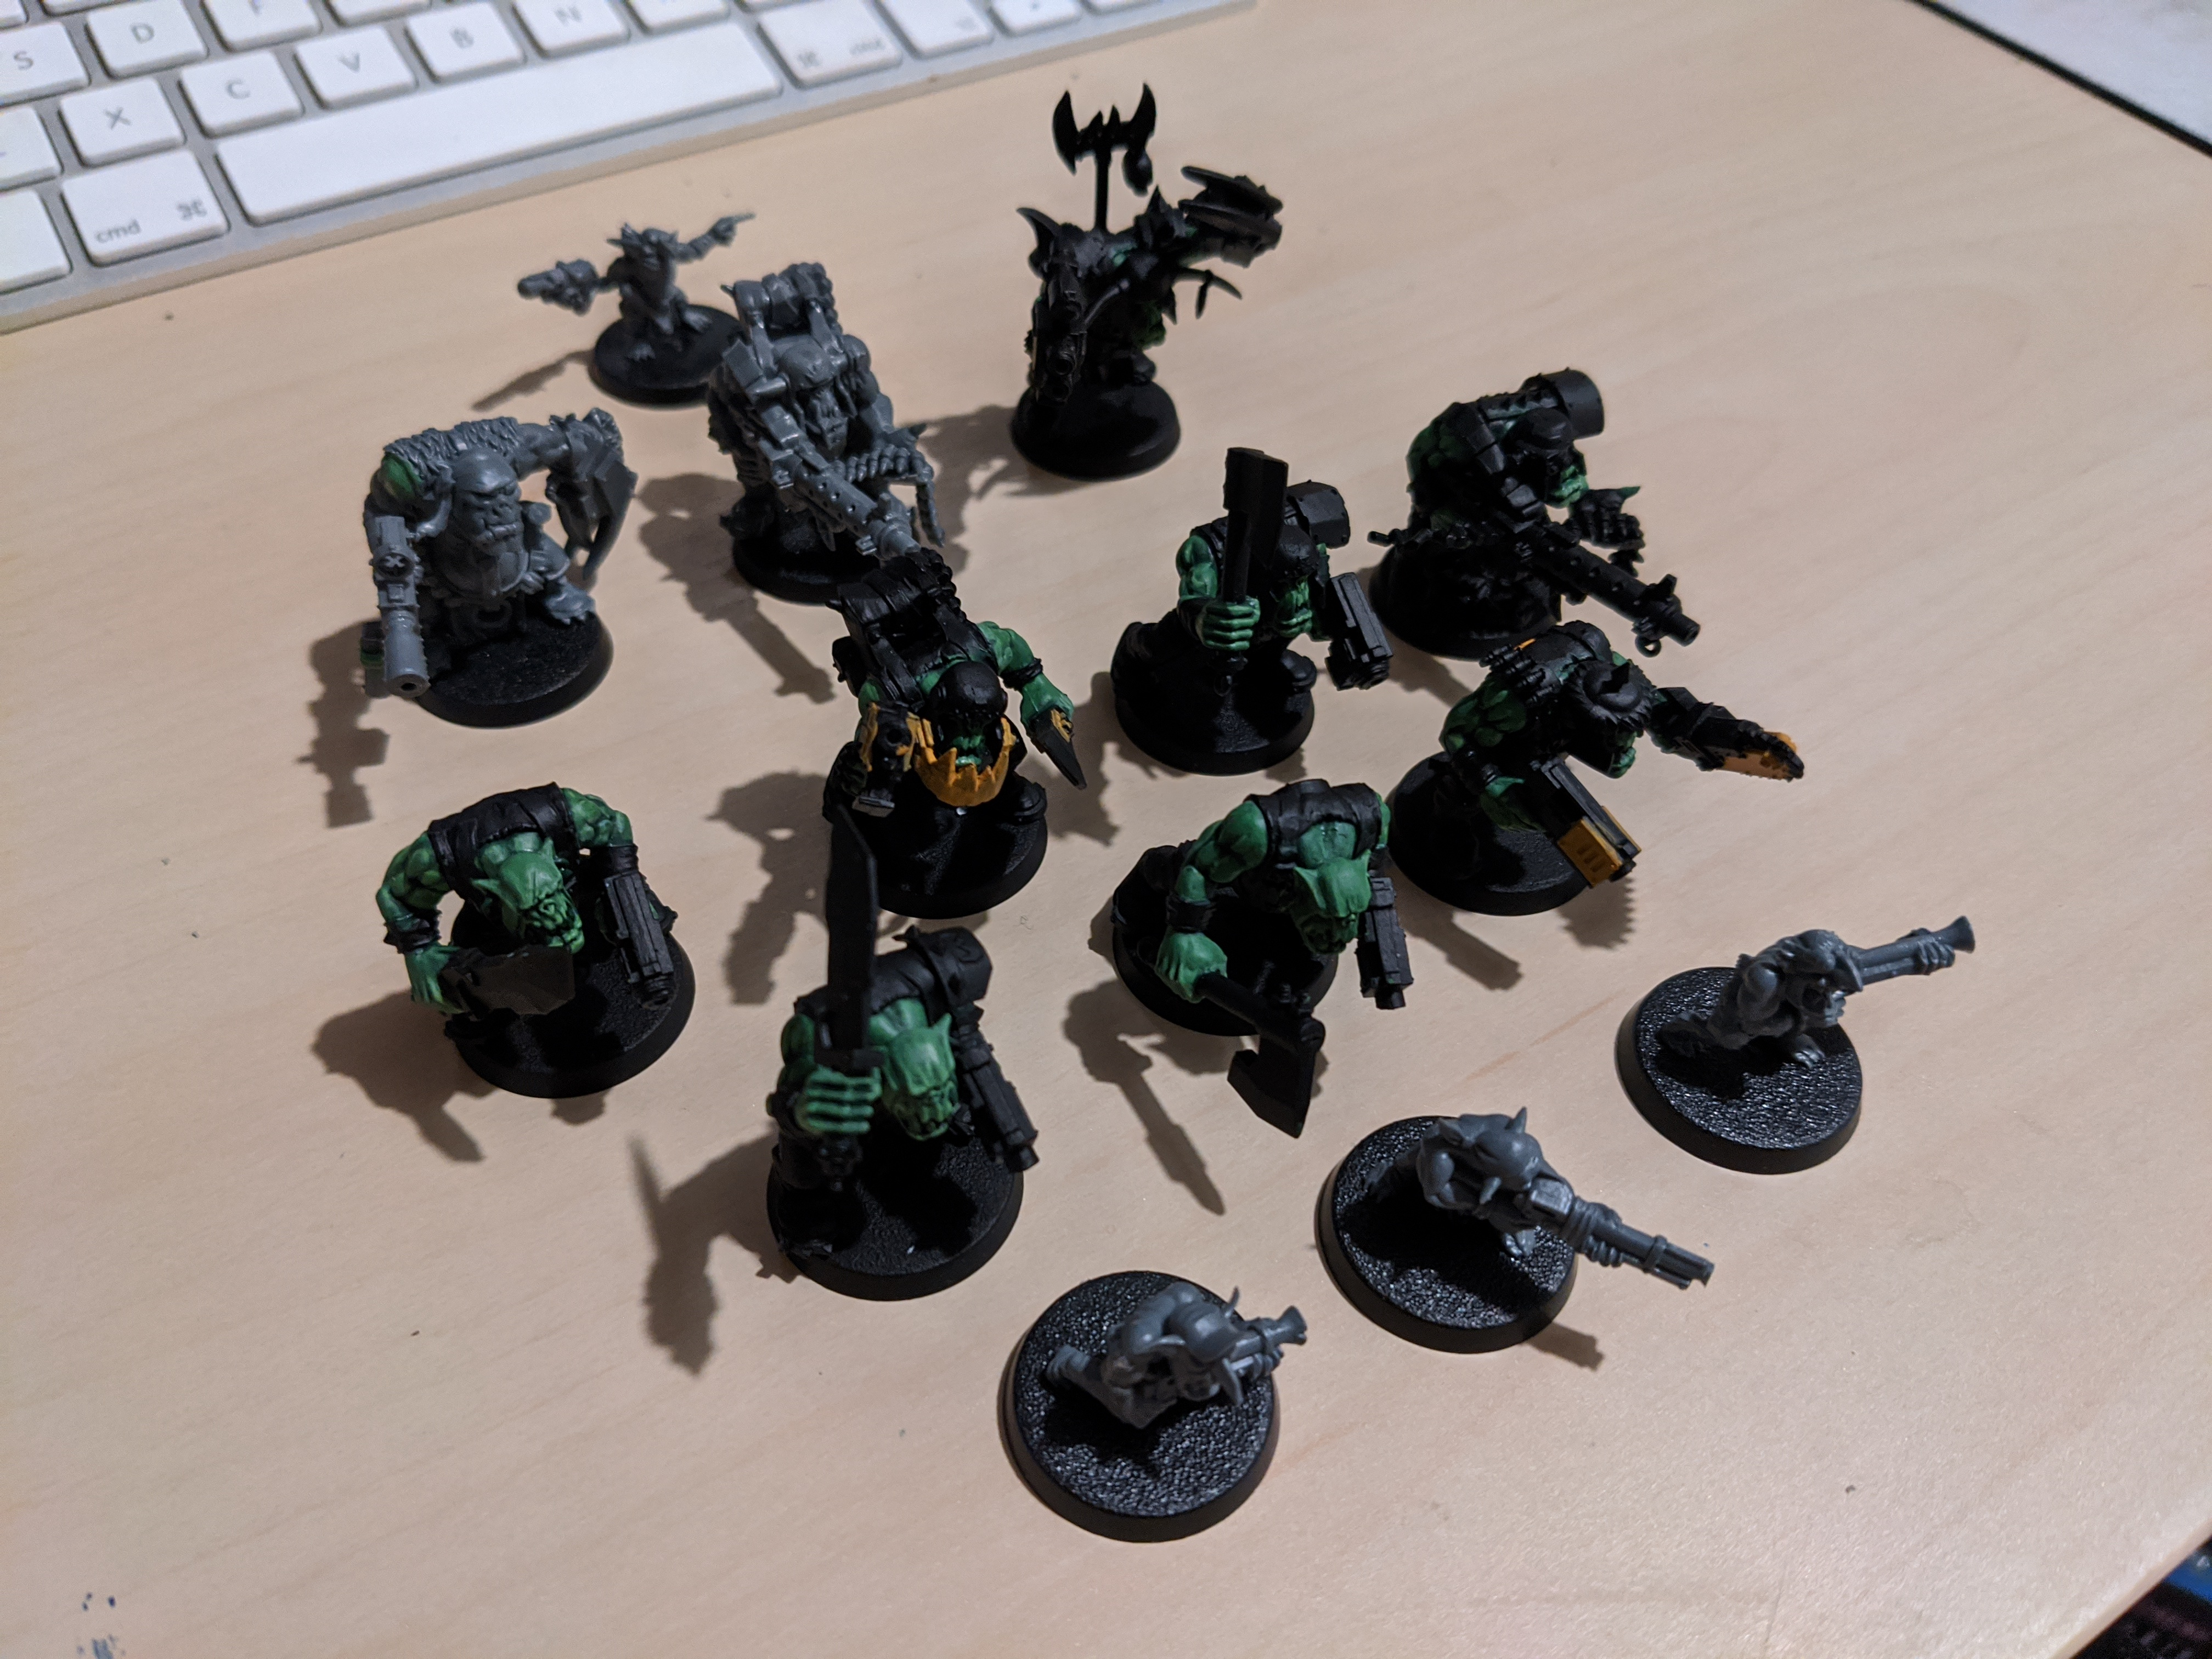 A squad of partially built Ork miniatures